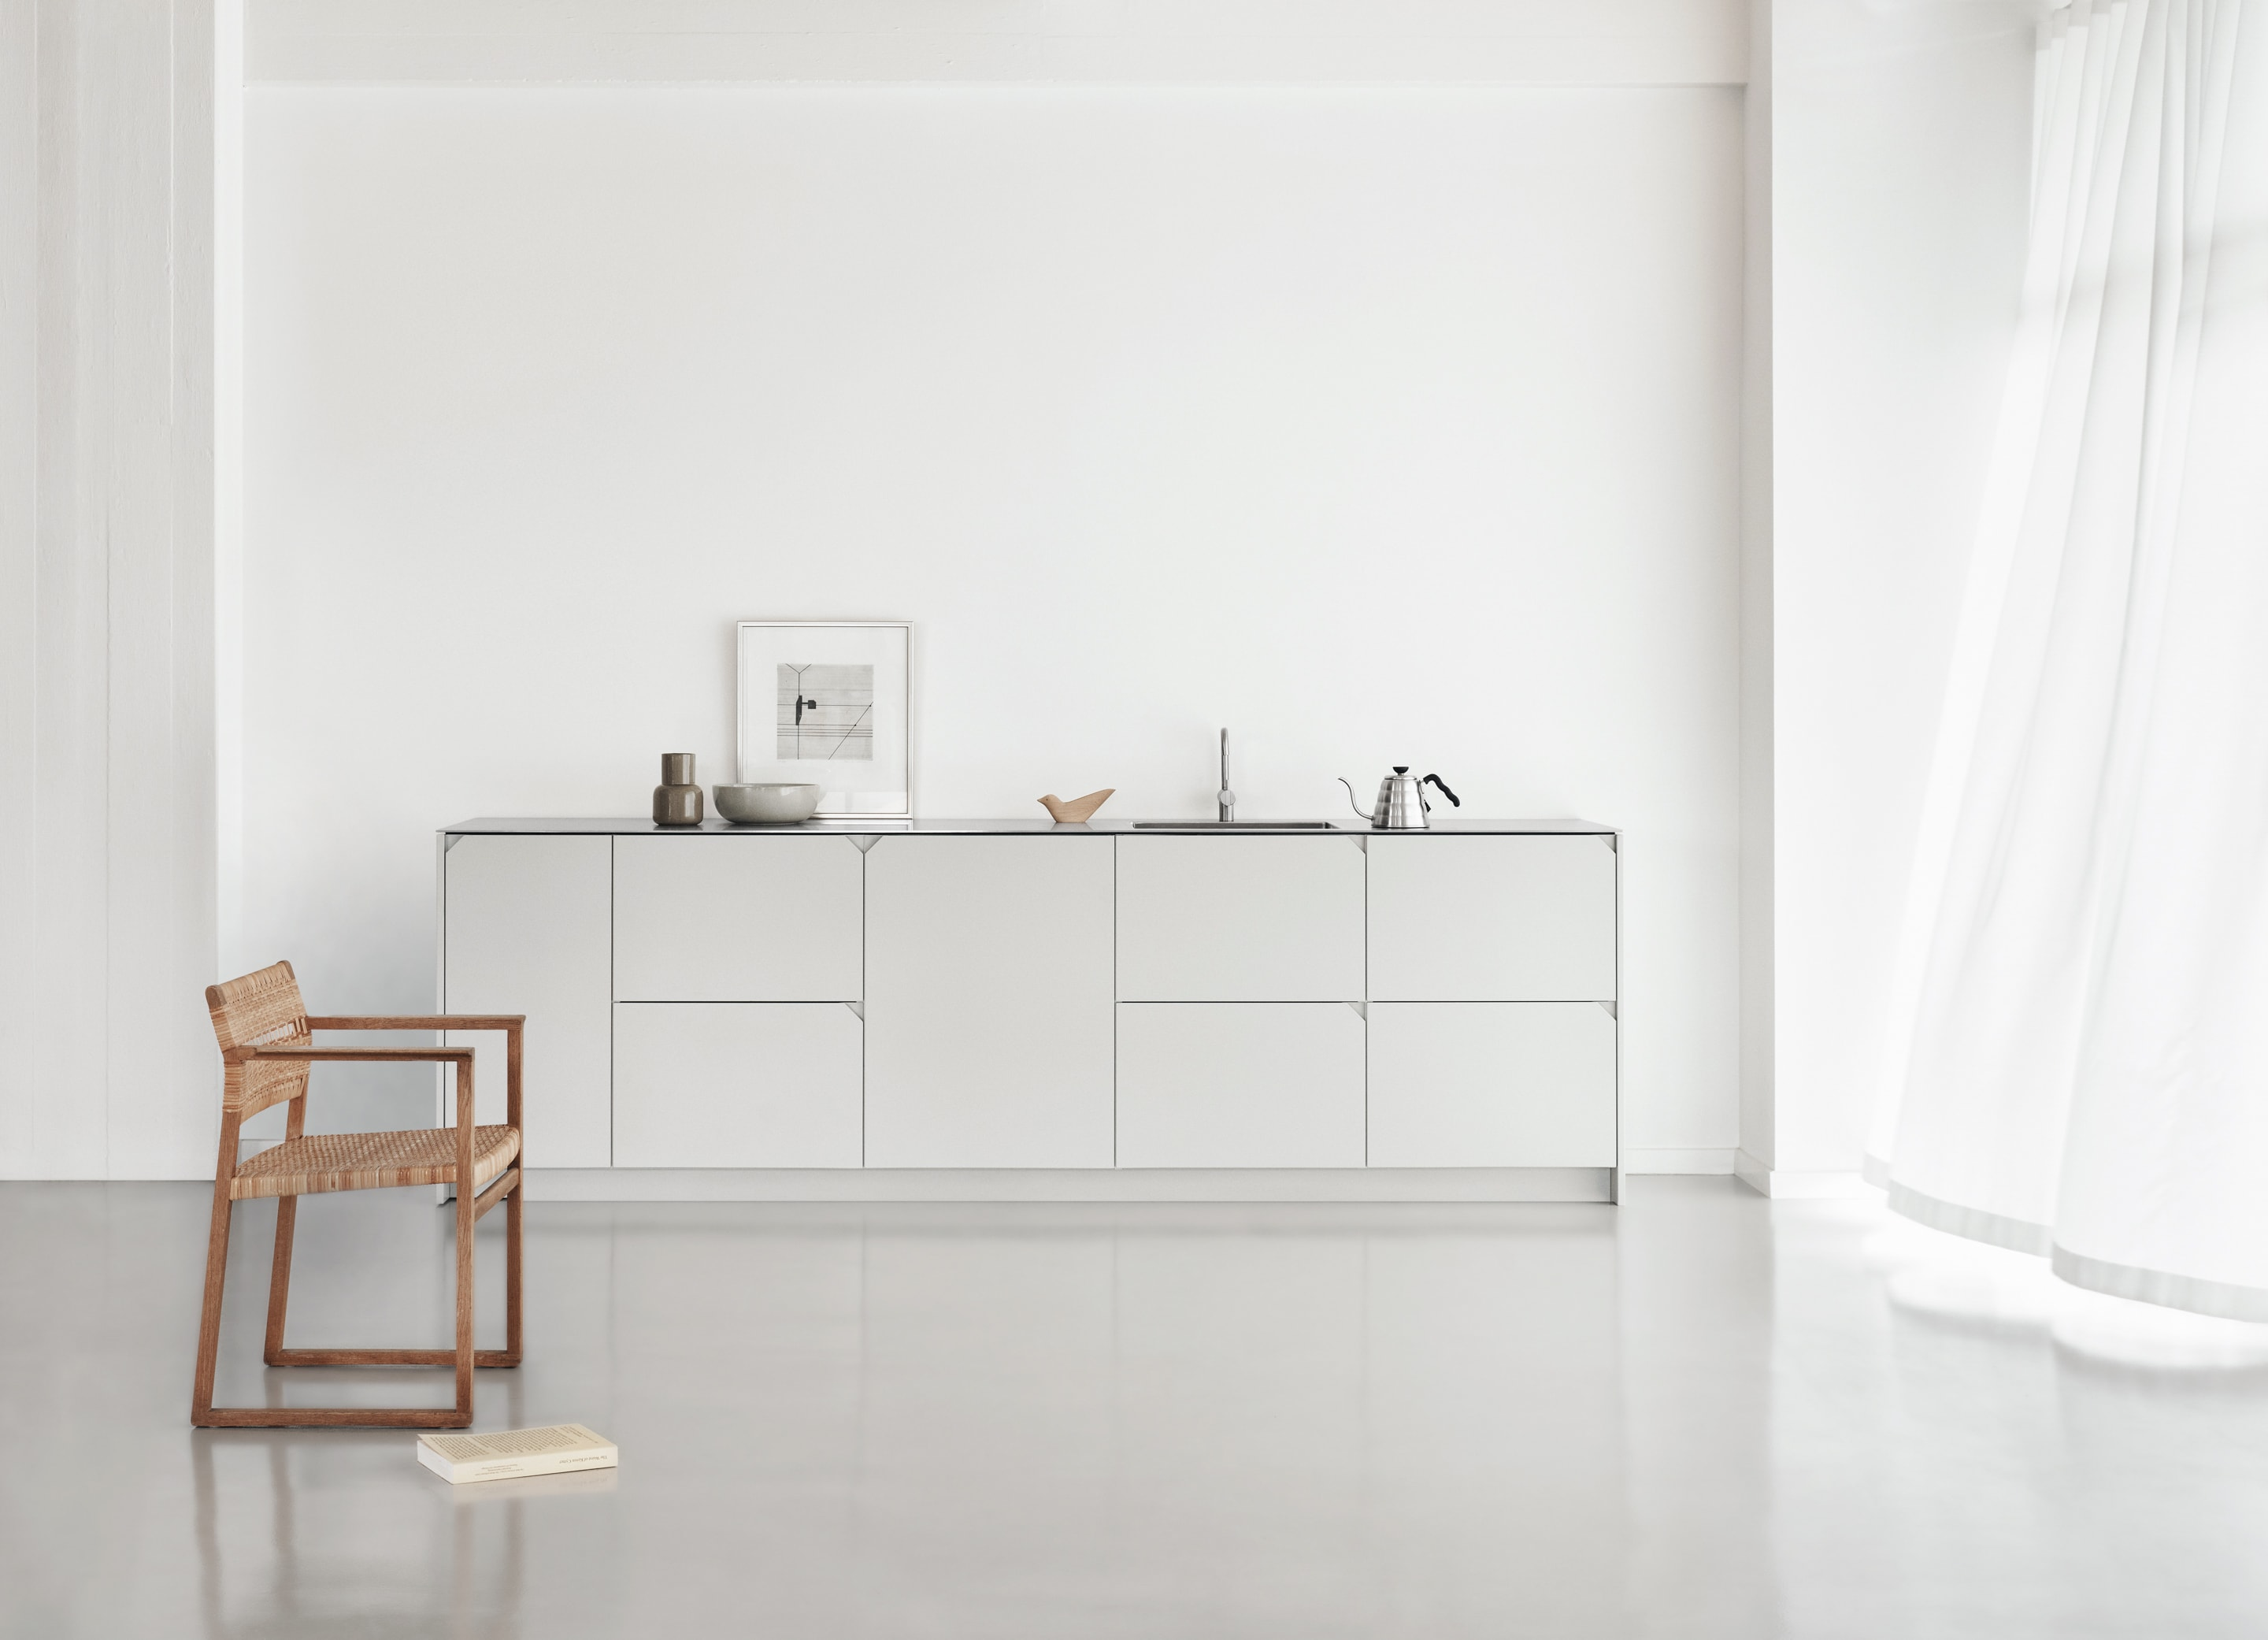 Two New Designs For Ikea Kitchen Hacks From Reform Cate St